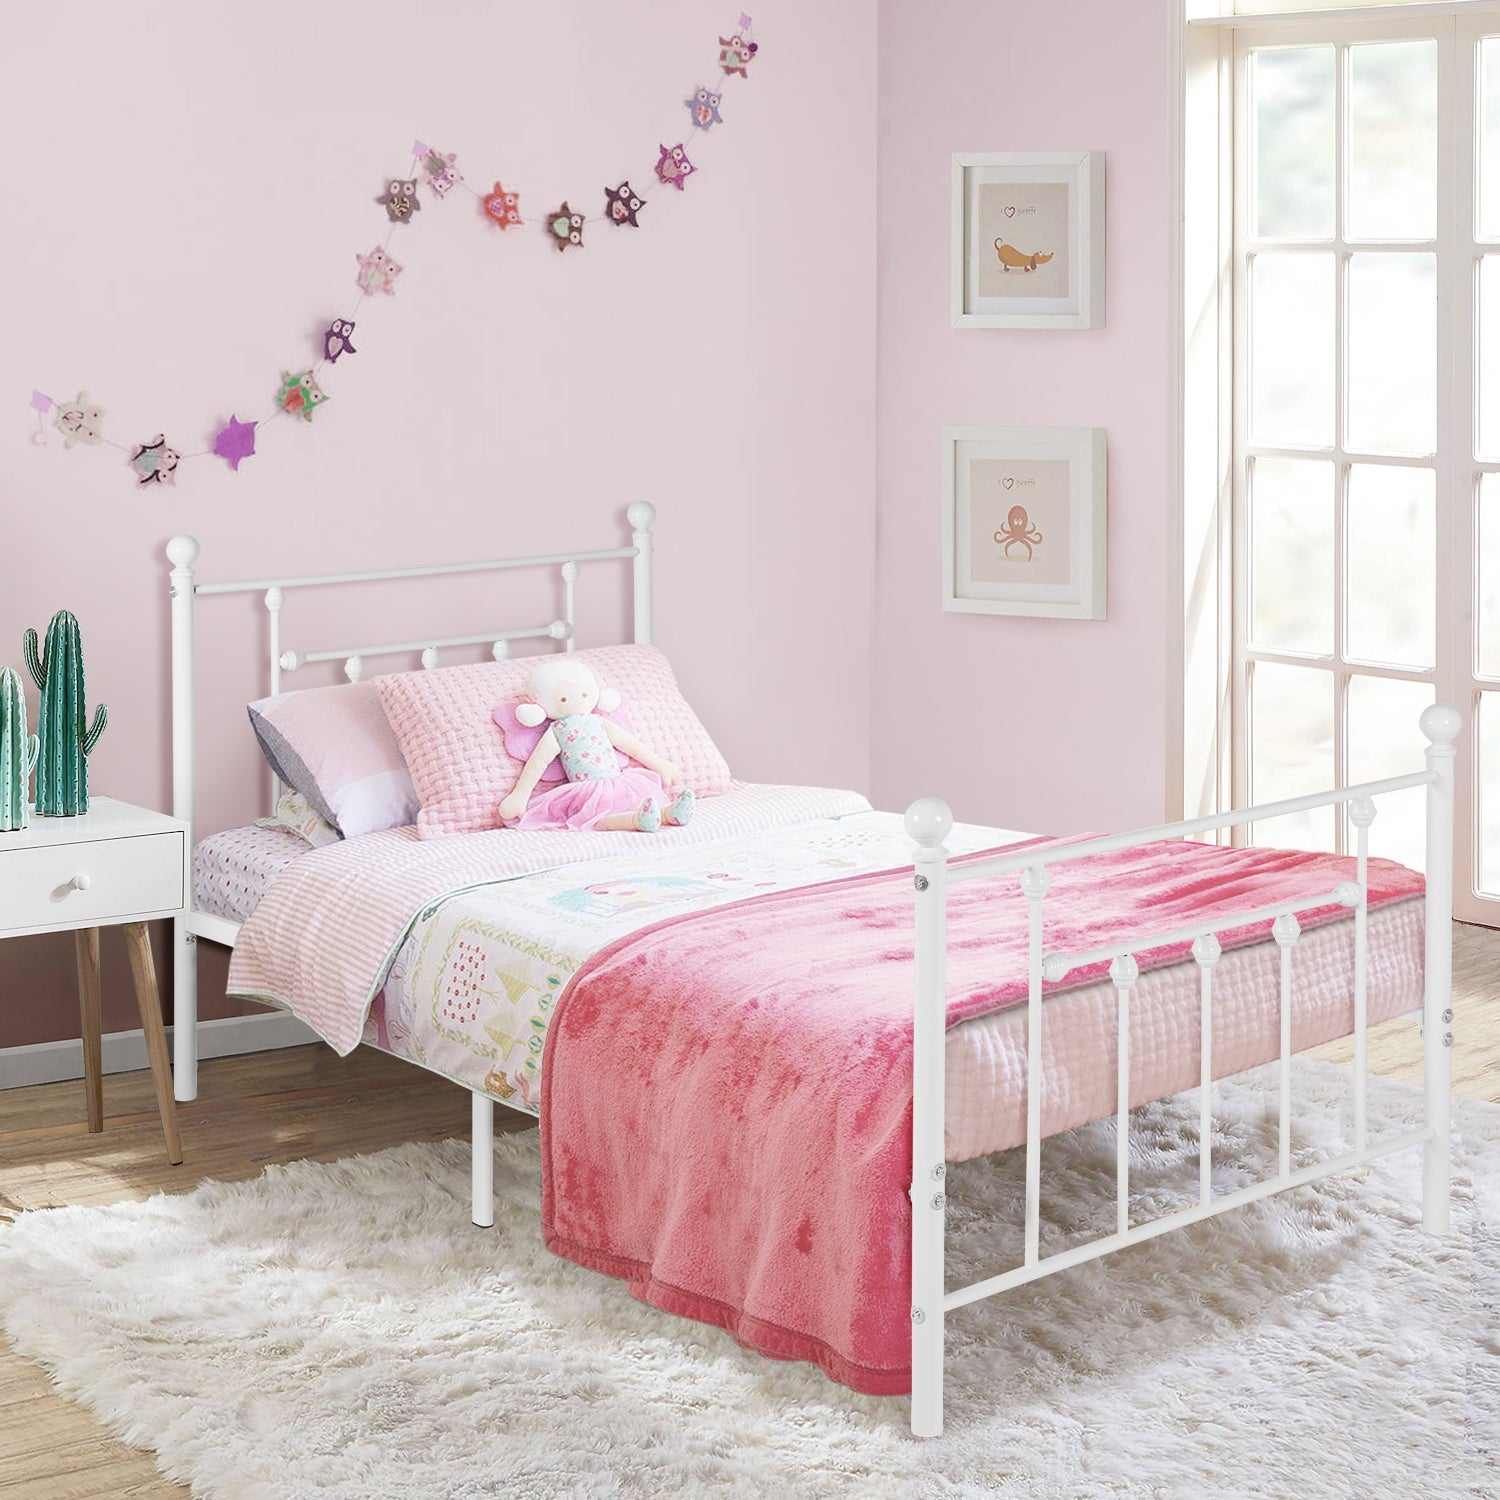 Picture of: Vecelo Vintage Line Metal Bed Frame White Twin Full Queen Size 3 Opotion On Sale Overstock 29875431